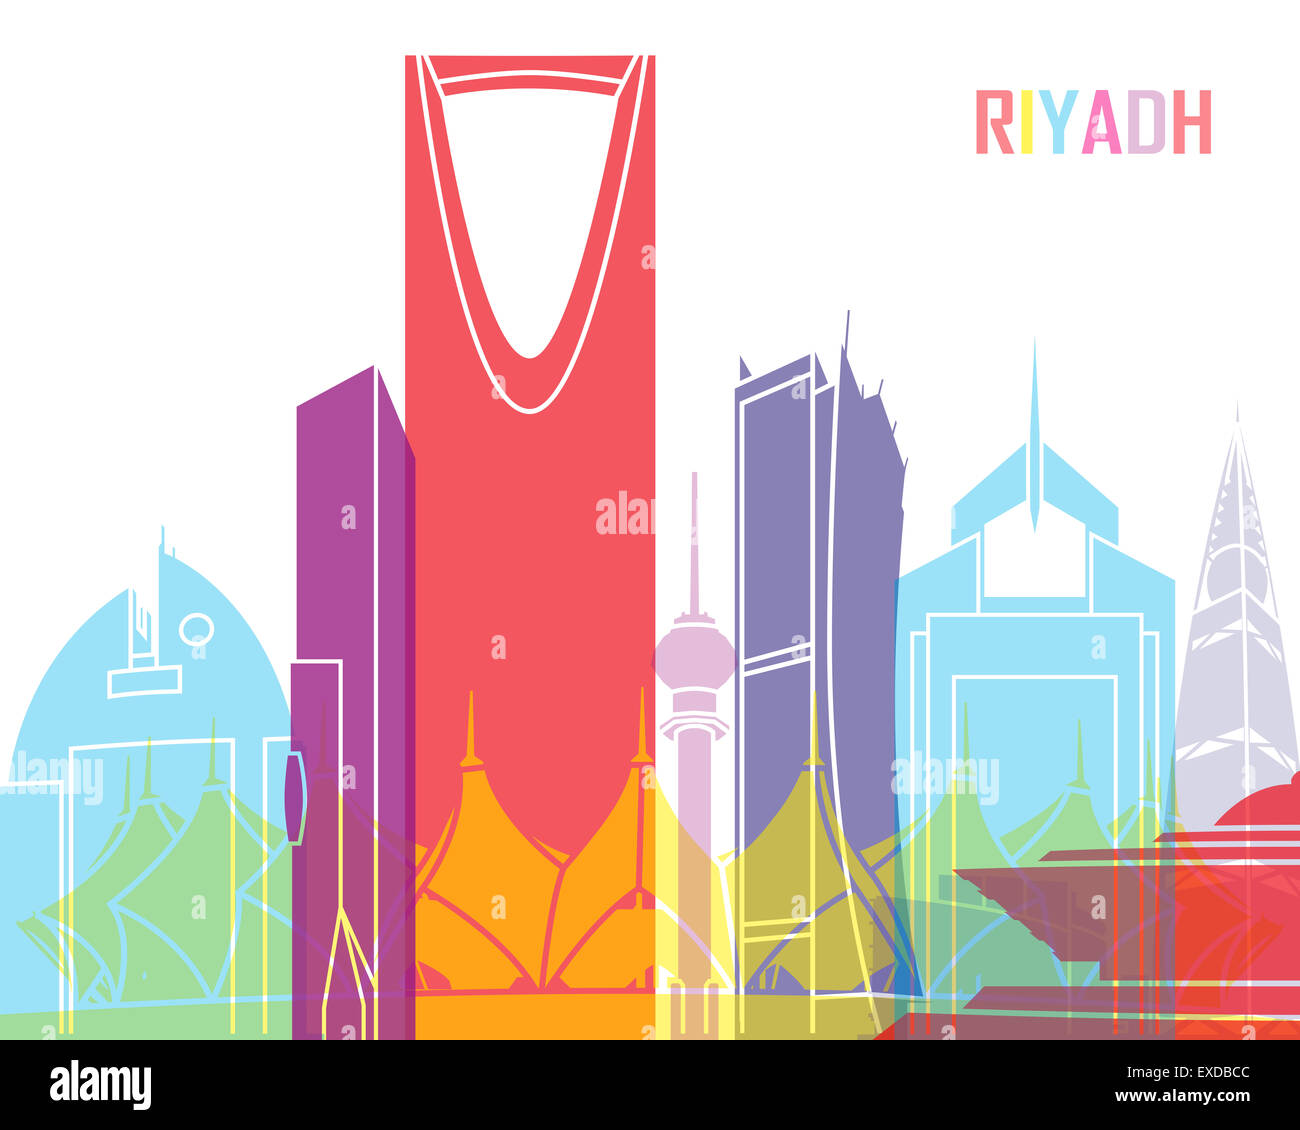 Riyadh skyline pop in modificabile file vettoriali Immagini Stock